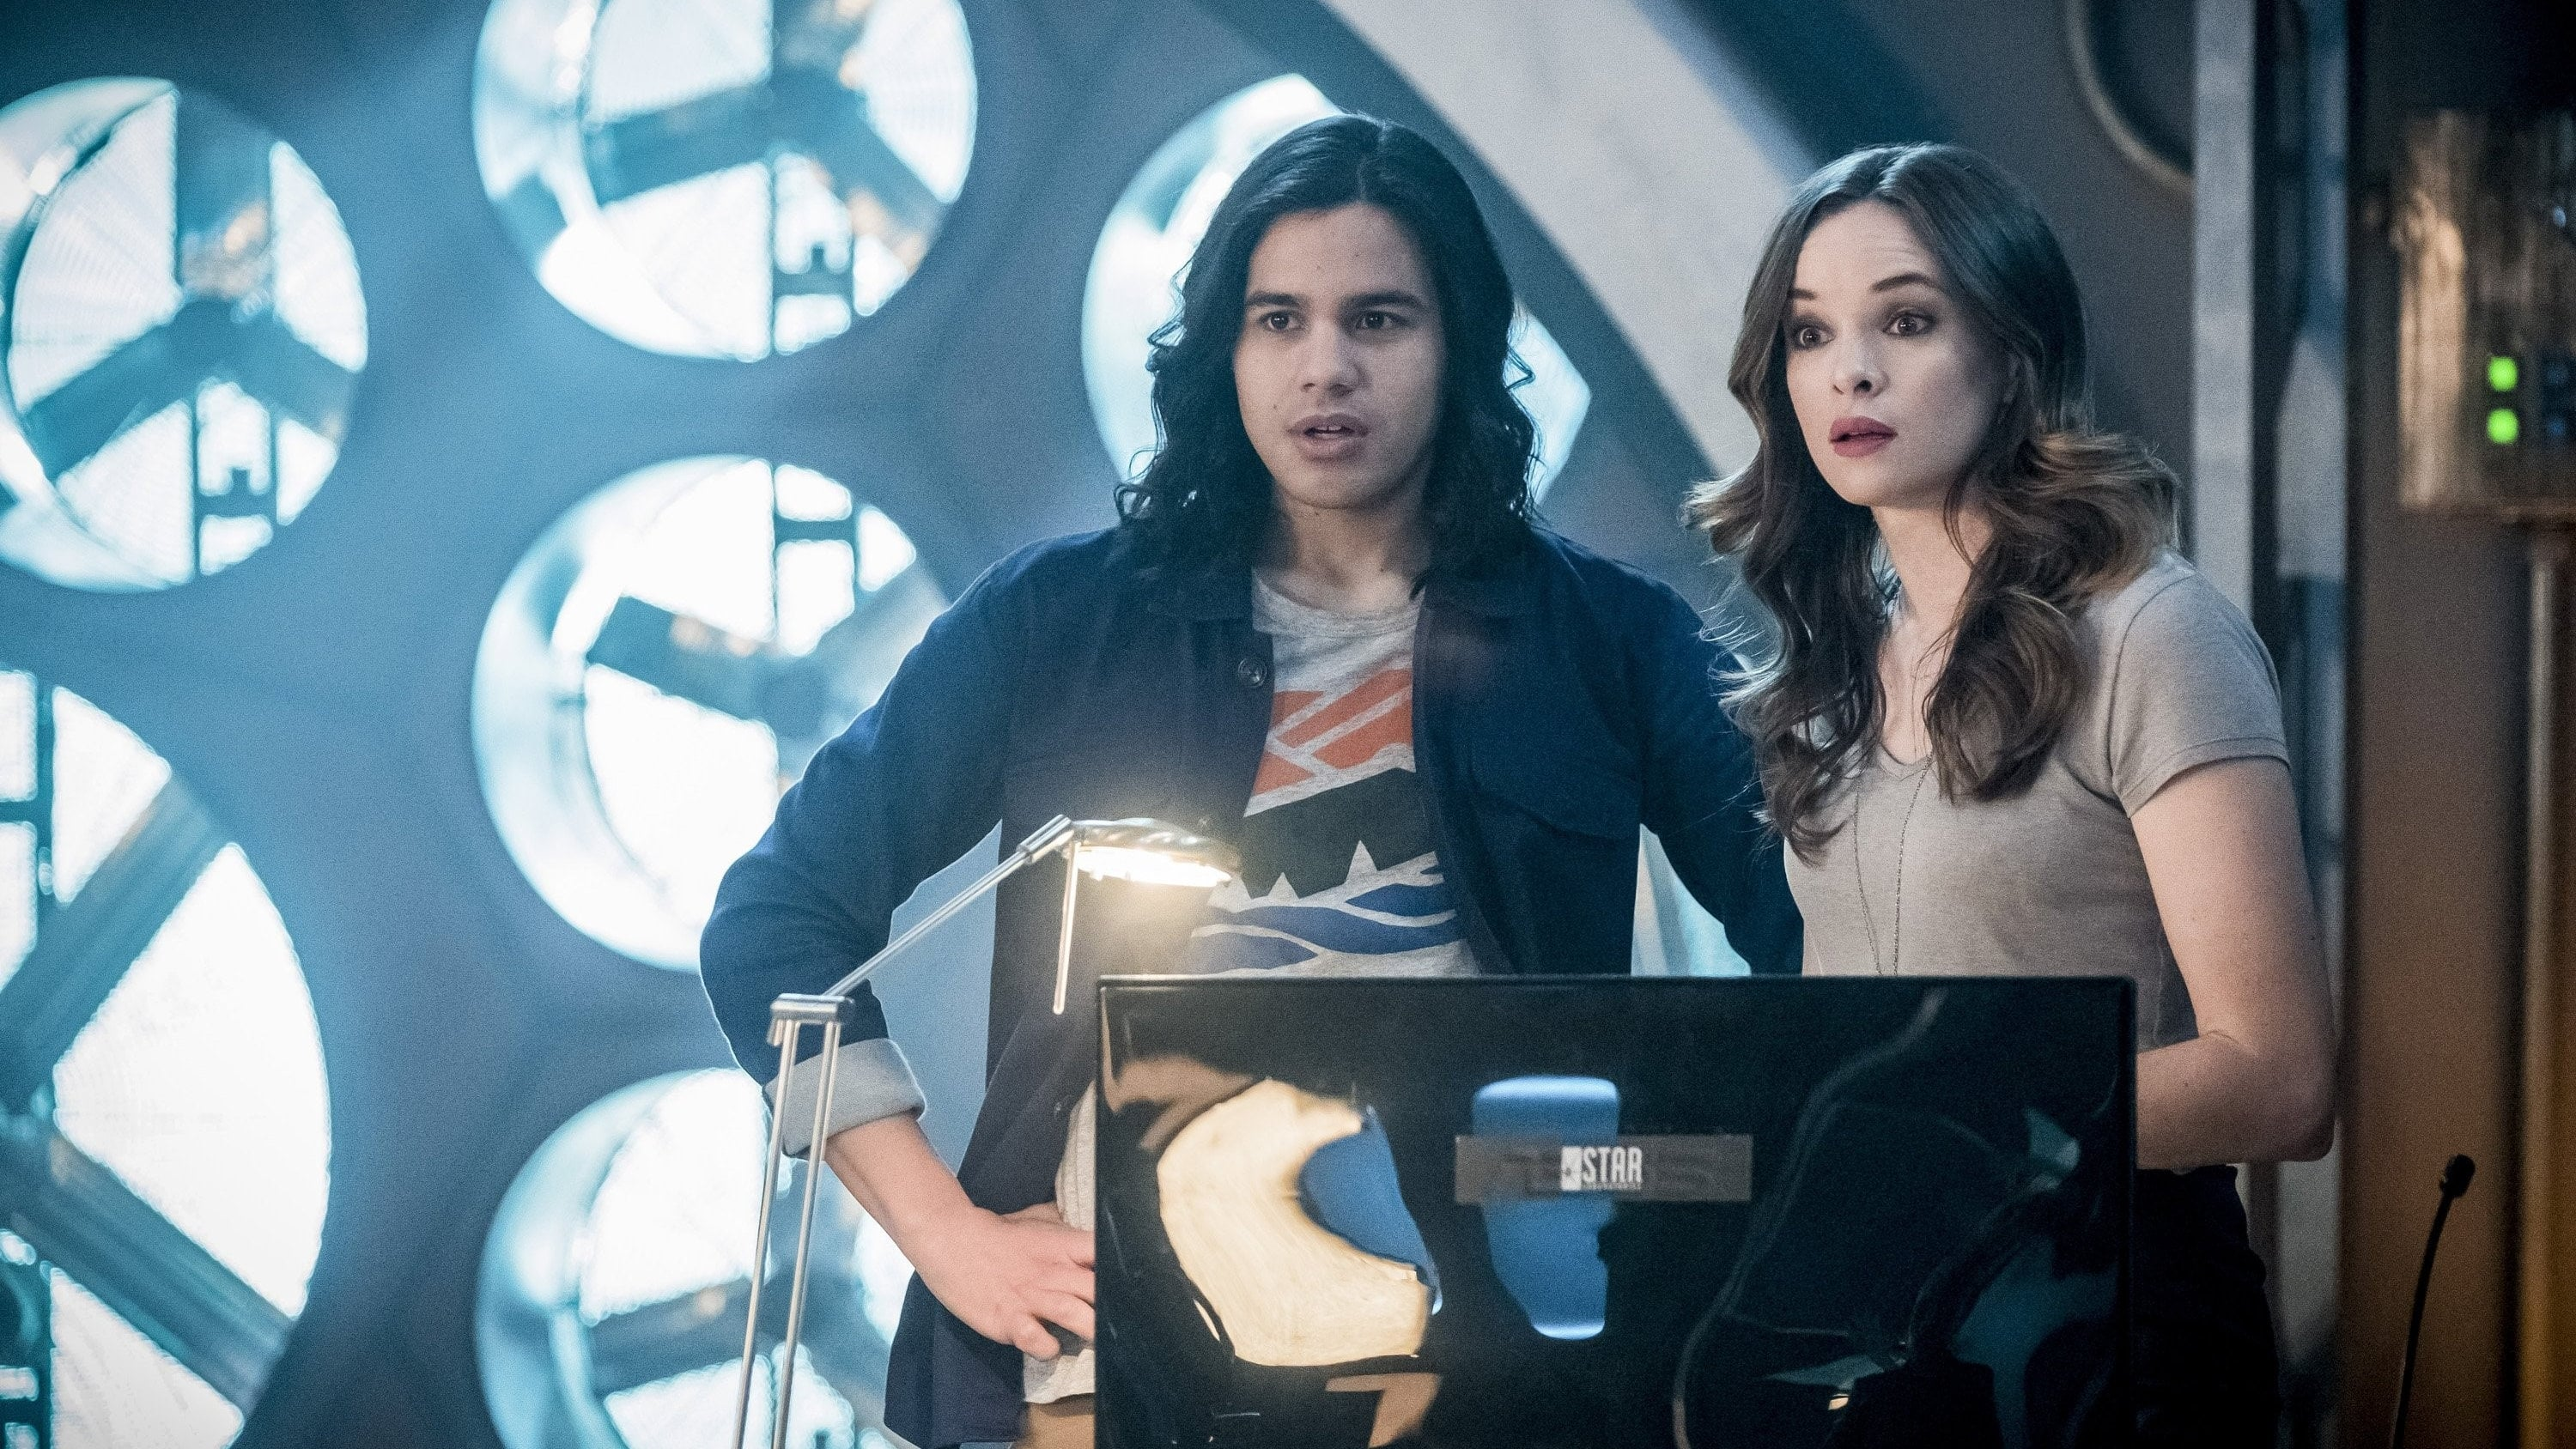 The Flash - Season 4 Episode 17 : Null and Annoyed